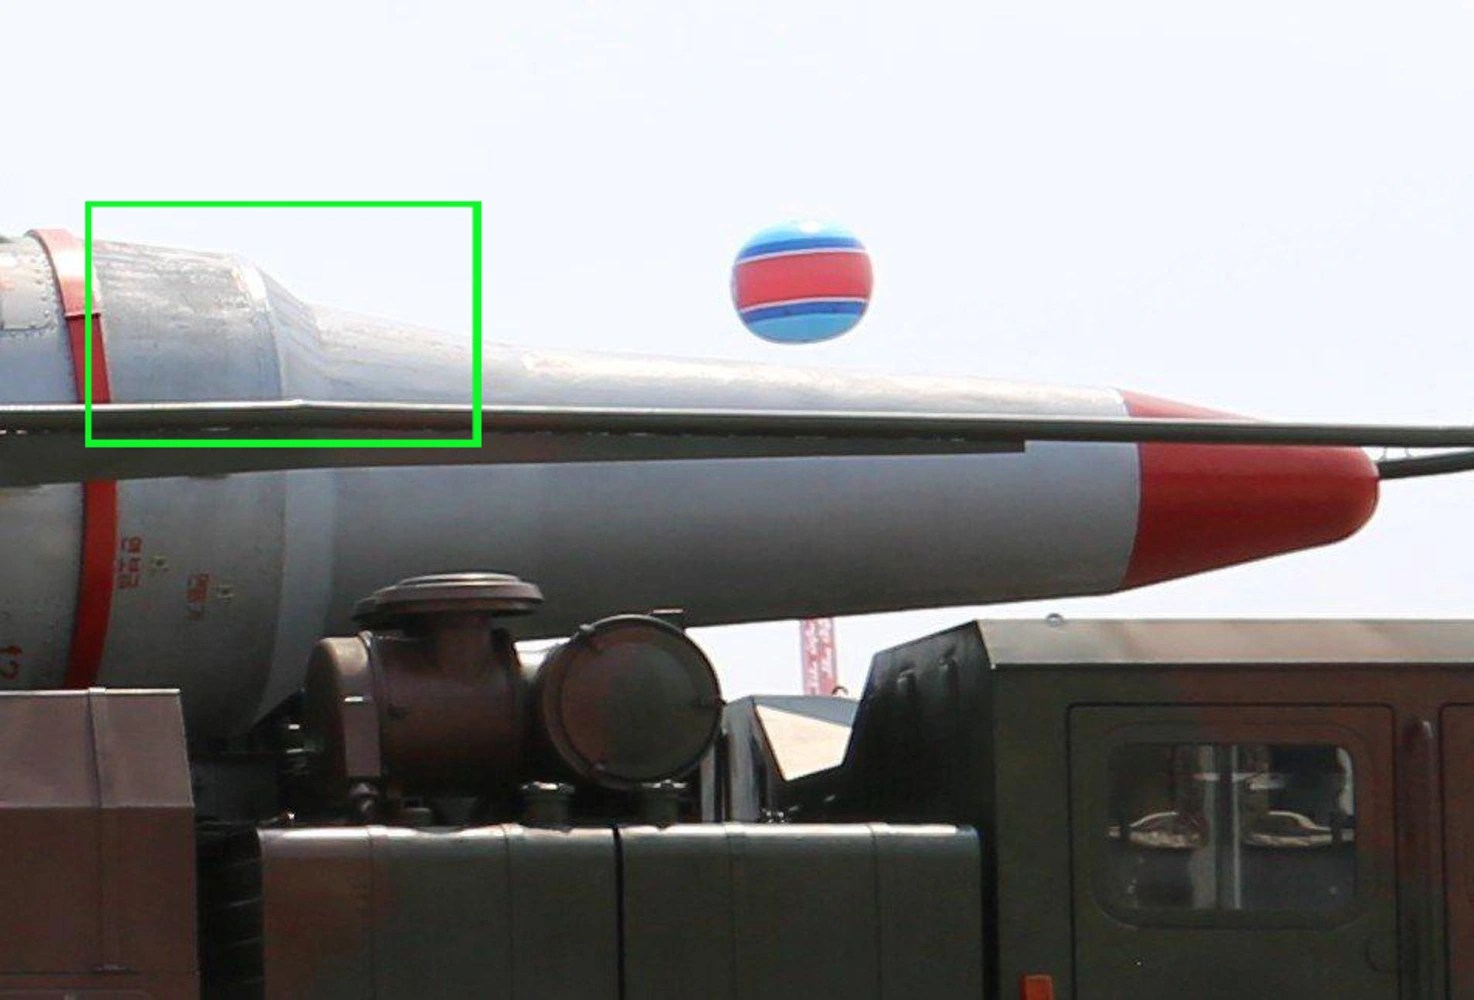 https://i0.wp.com/media1.s-nbcnews.com/j/streams/2013/august/130815/6c8633860-130812-north-korea-missile-detail-1p.nbcnews-ux-2880-1000.jpg